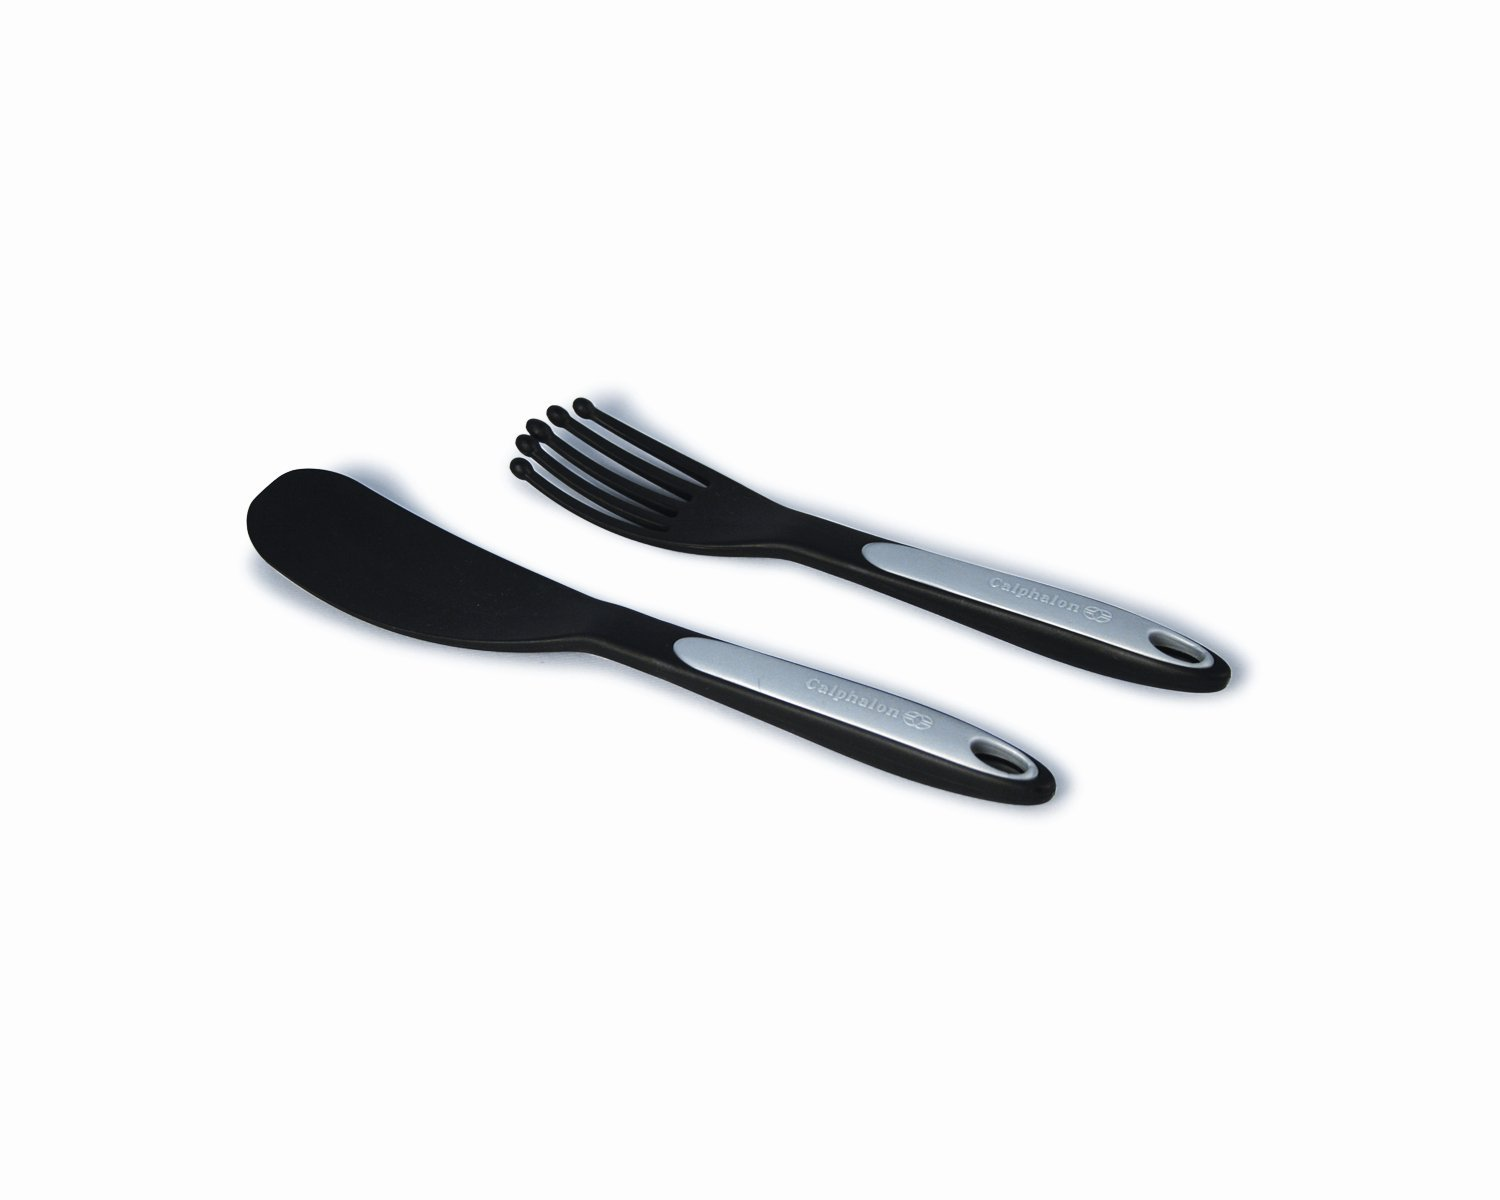 Calphalon Nylon 2-Piece Egg and Omelette Tool Set